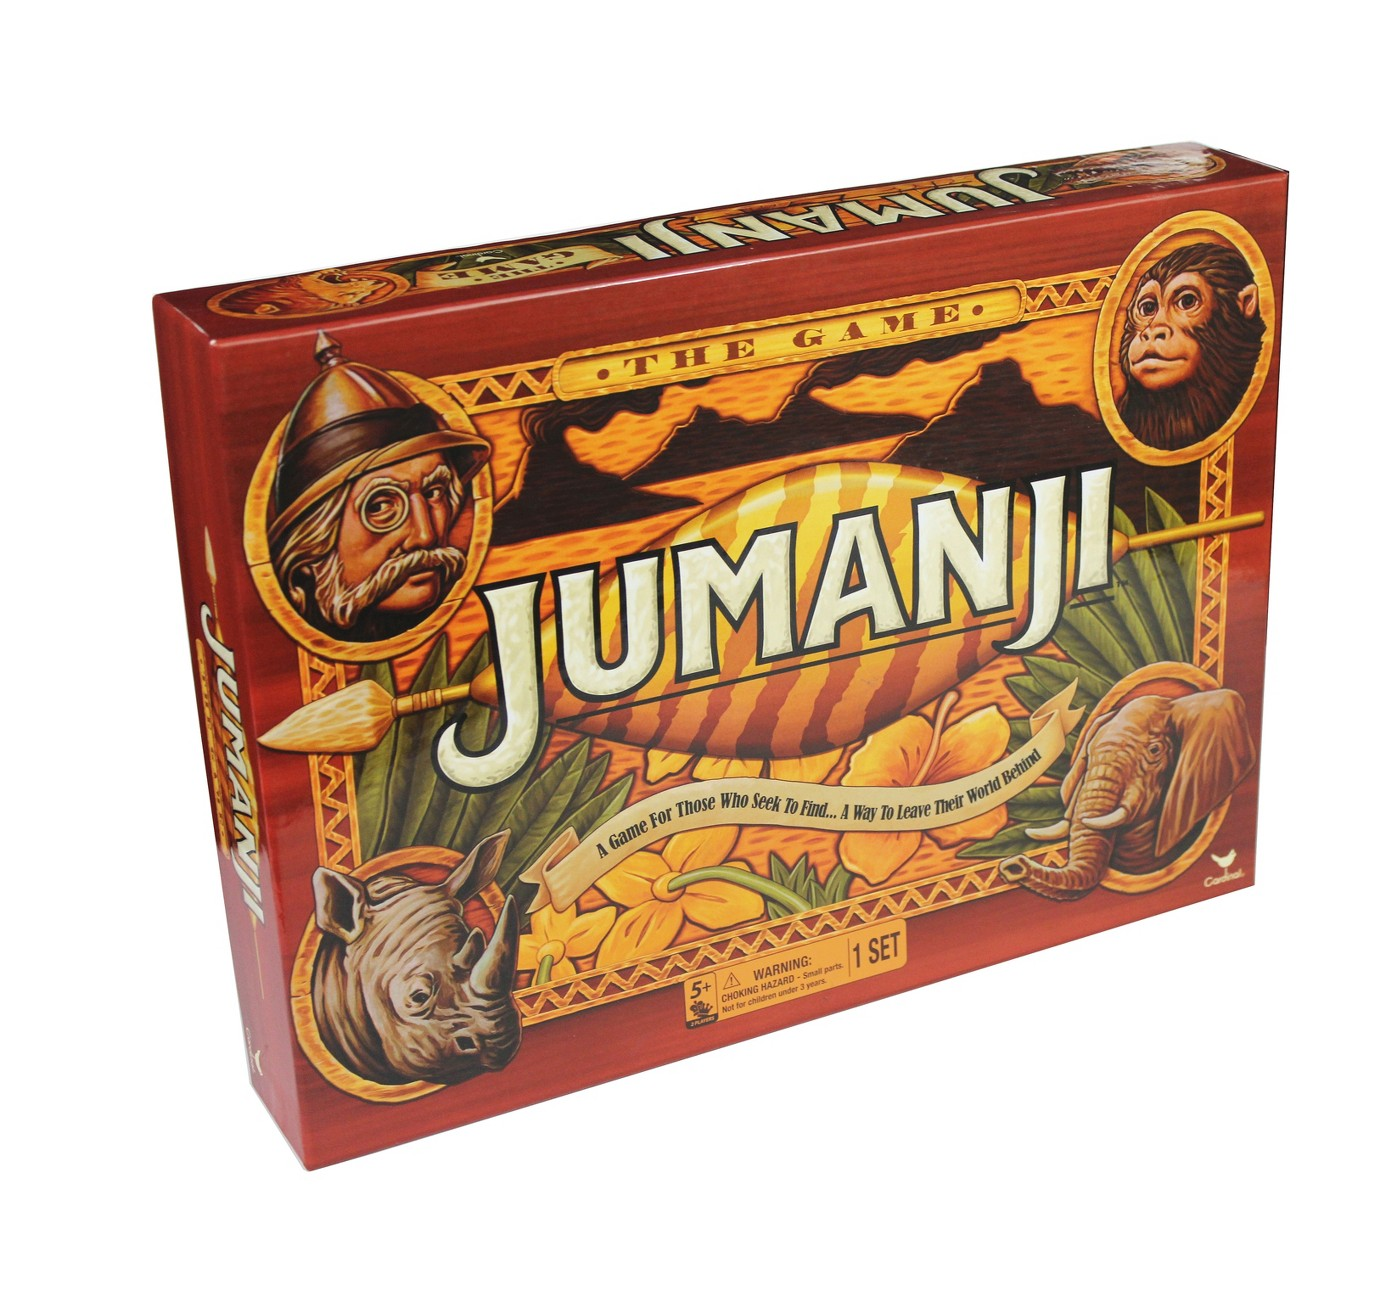 Cool gifts for tweens: Jumanji Board Game